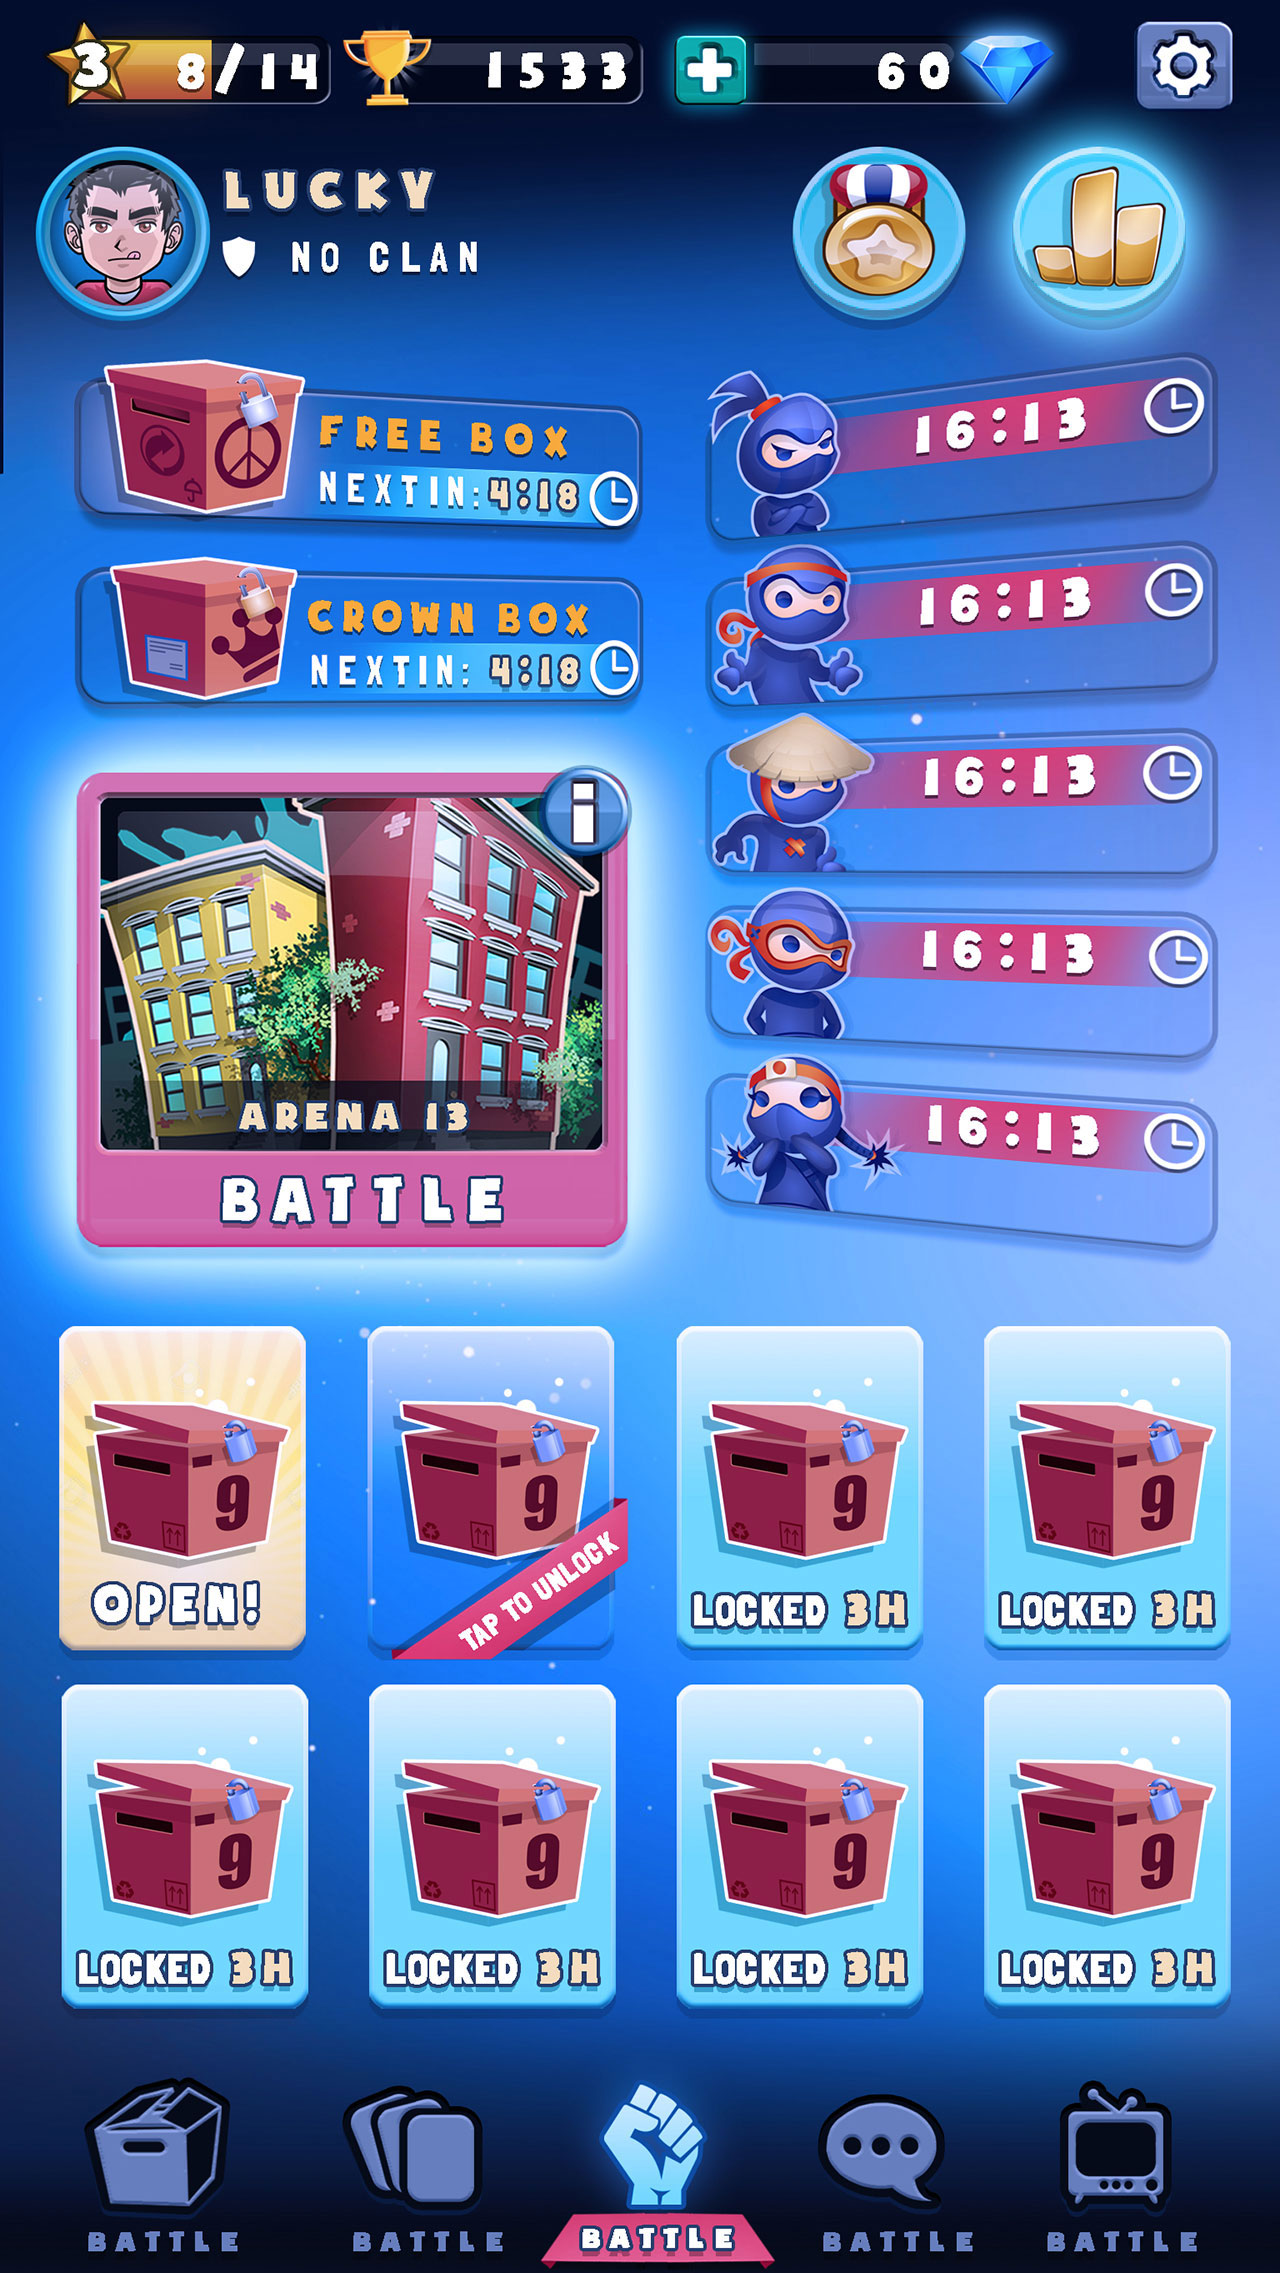 mobile-game-interface-design-ui-ux-concept-gameart-gameinterface-screenB